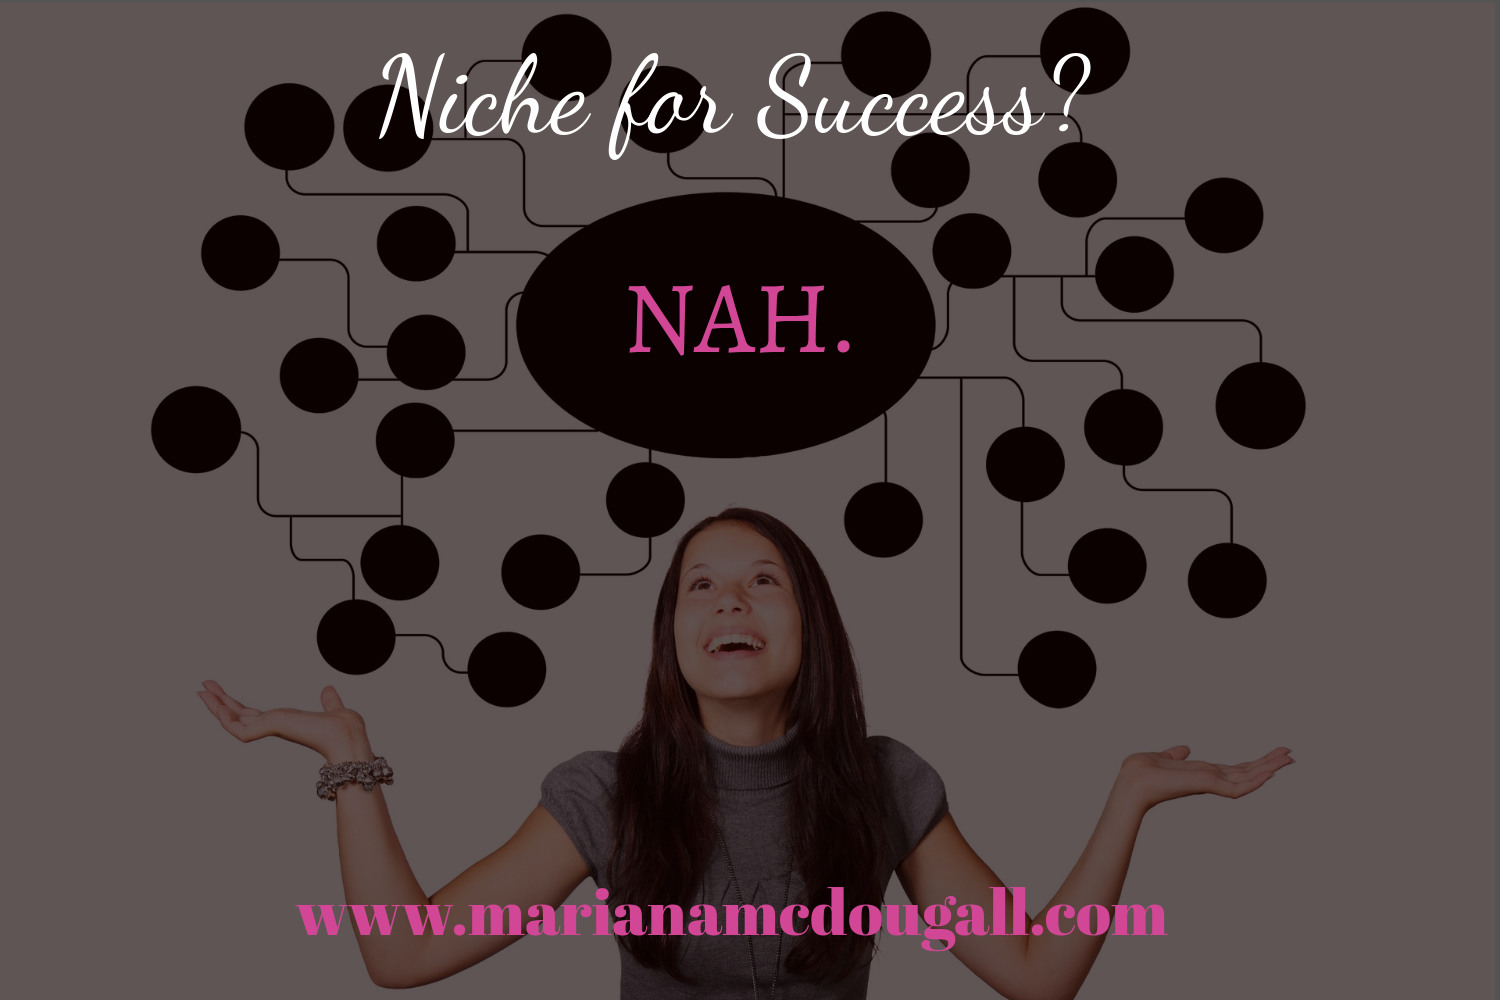 Niche for success? Nah. www.marianamcdougall.com niching is overrated, ditch your niche!